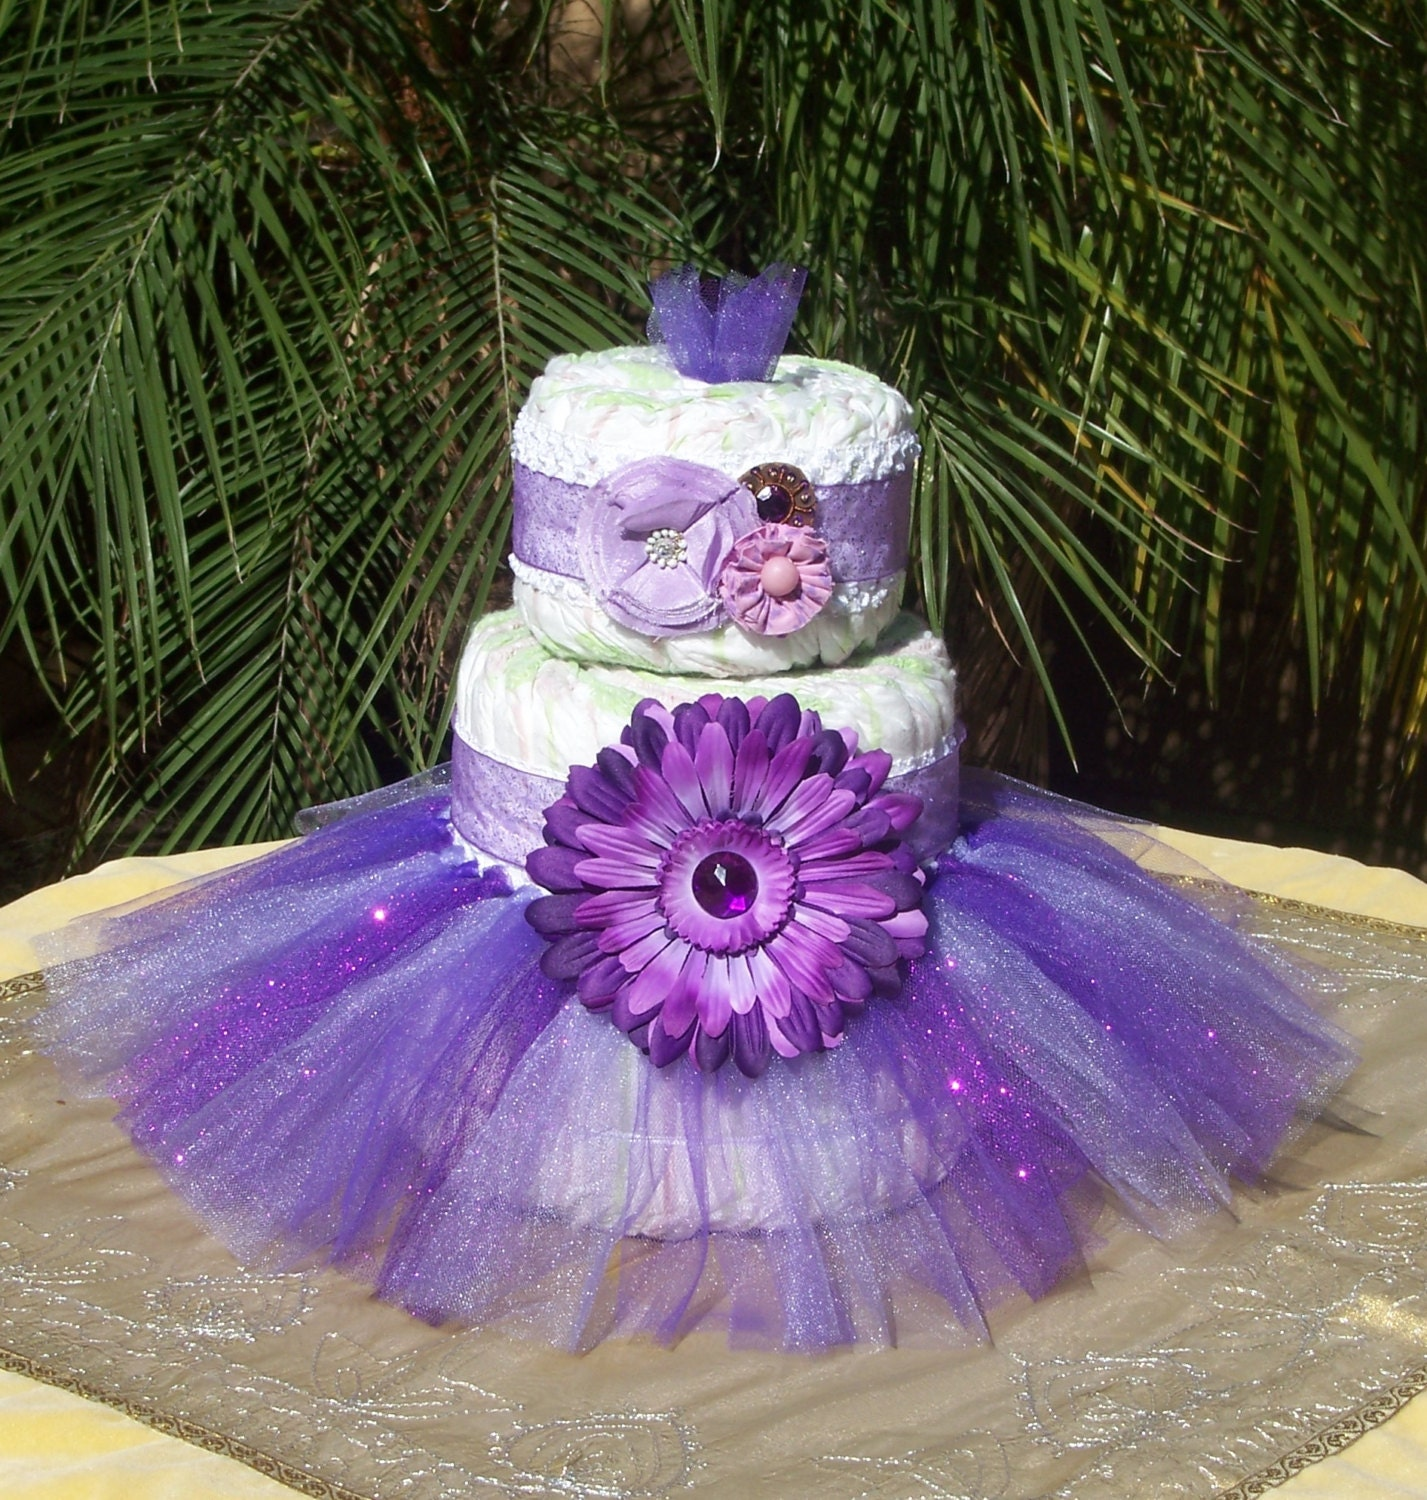 Diaper Cake Decorating Kit : Tutu Diaper Cake Kit PURPLE GLITTER: Baby Shower Decoration